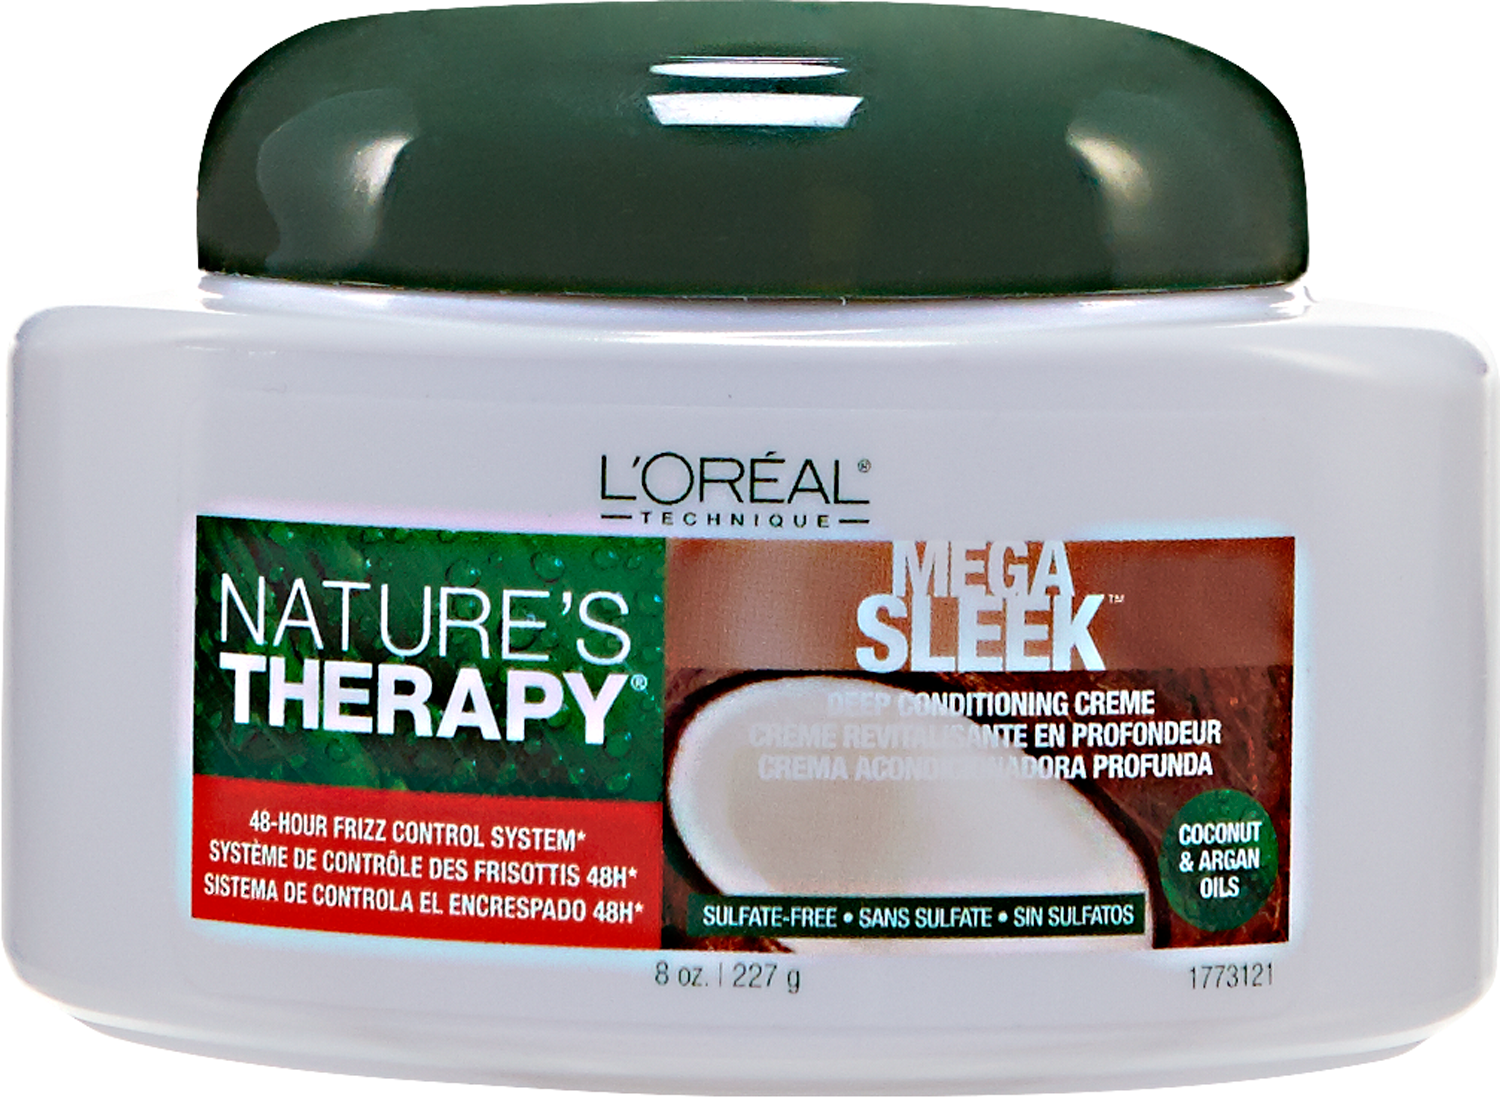 L'Oréal Paris Nature's Therapy Mega Sleek Deep Conditioning Creme